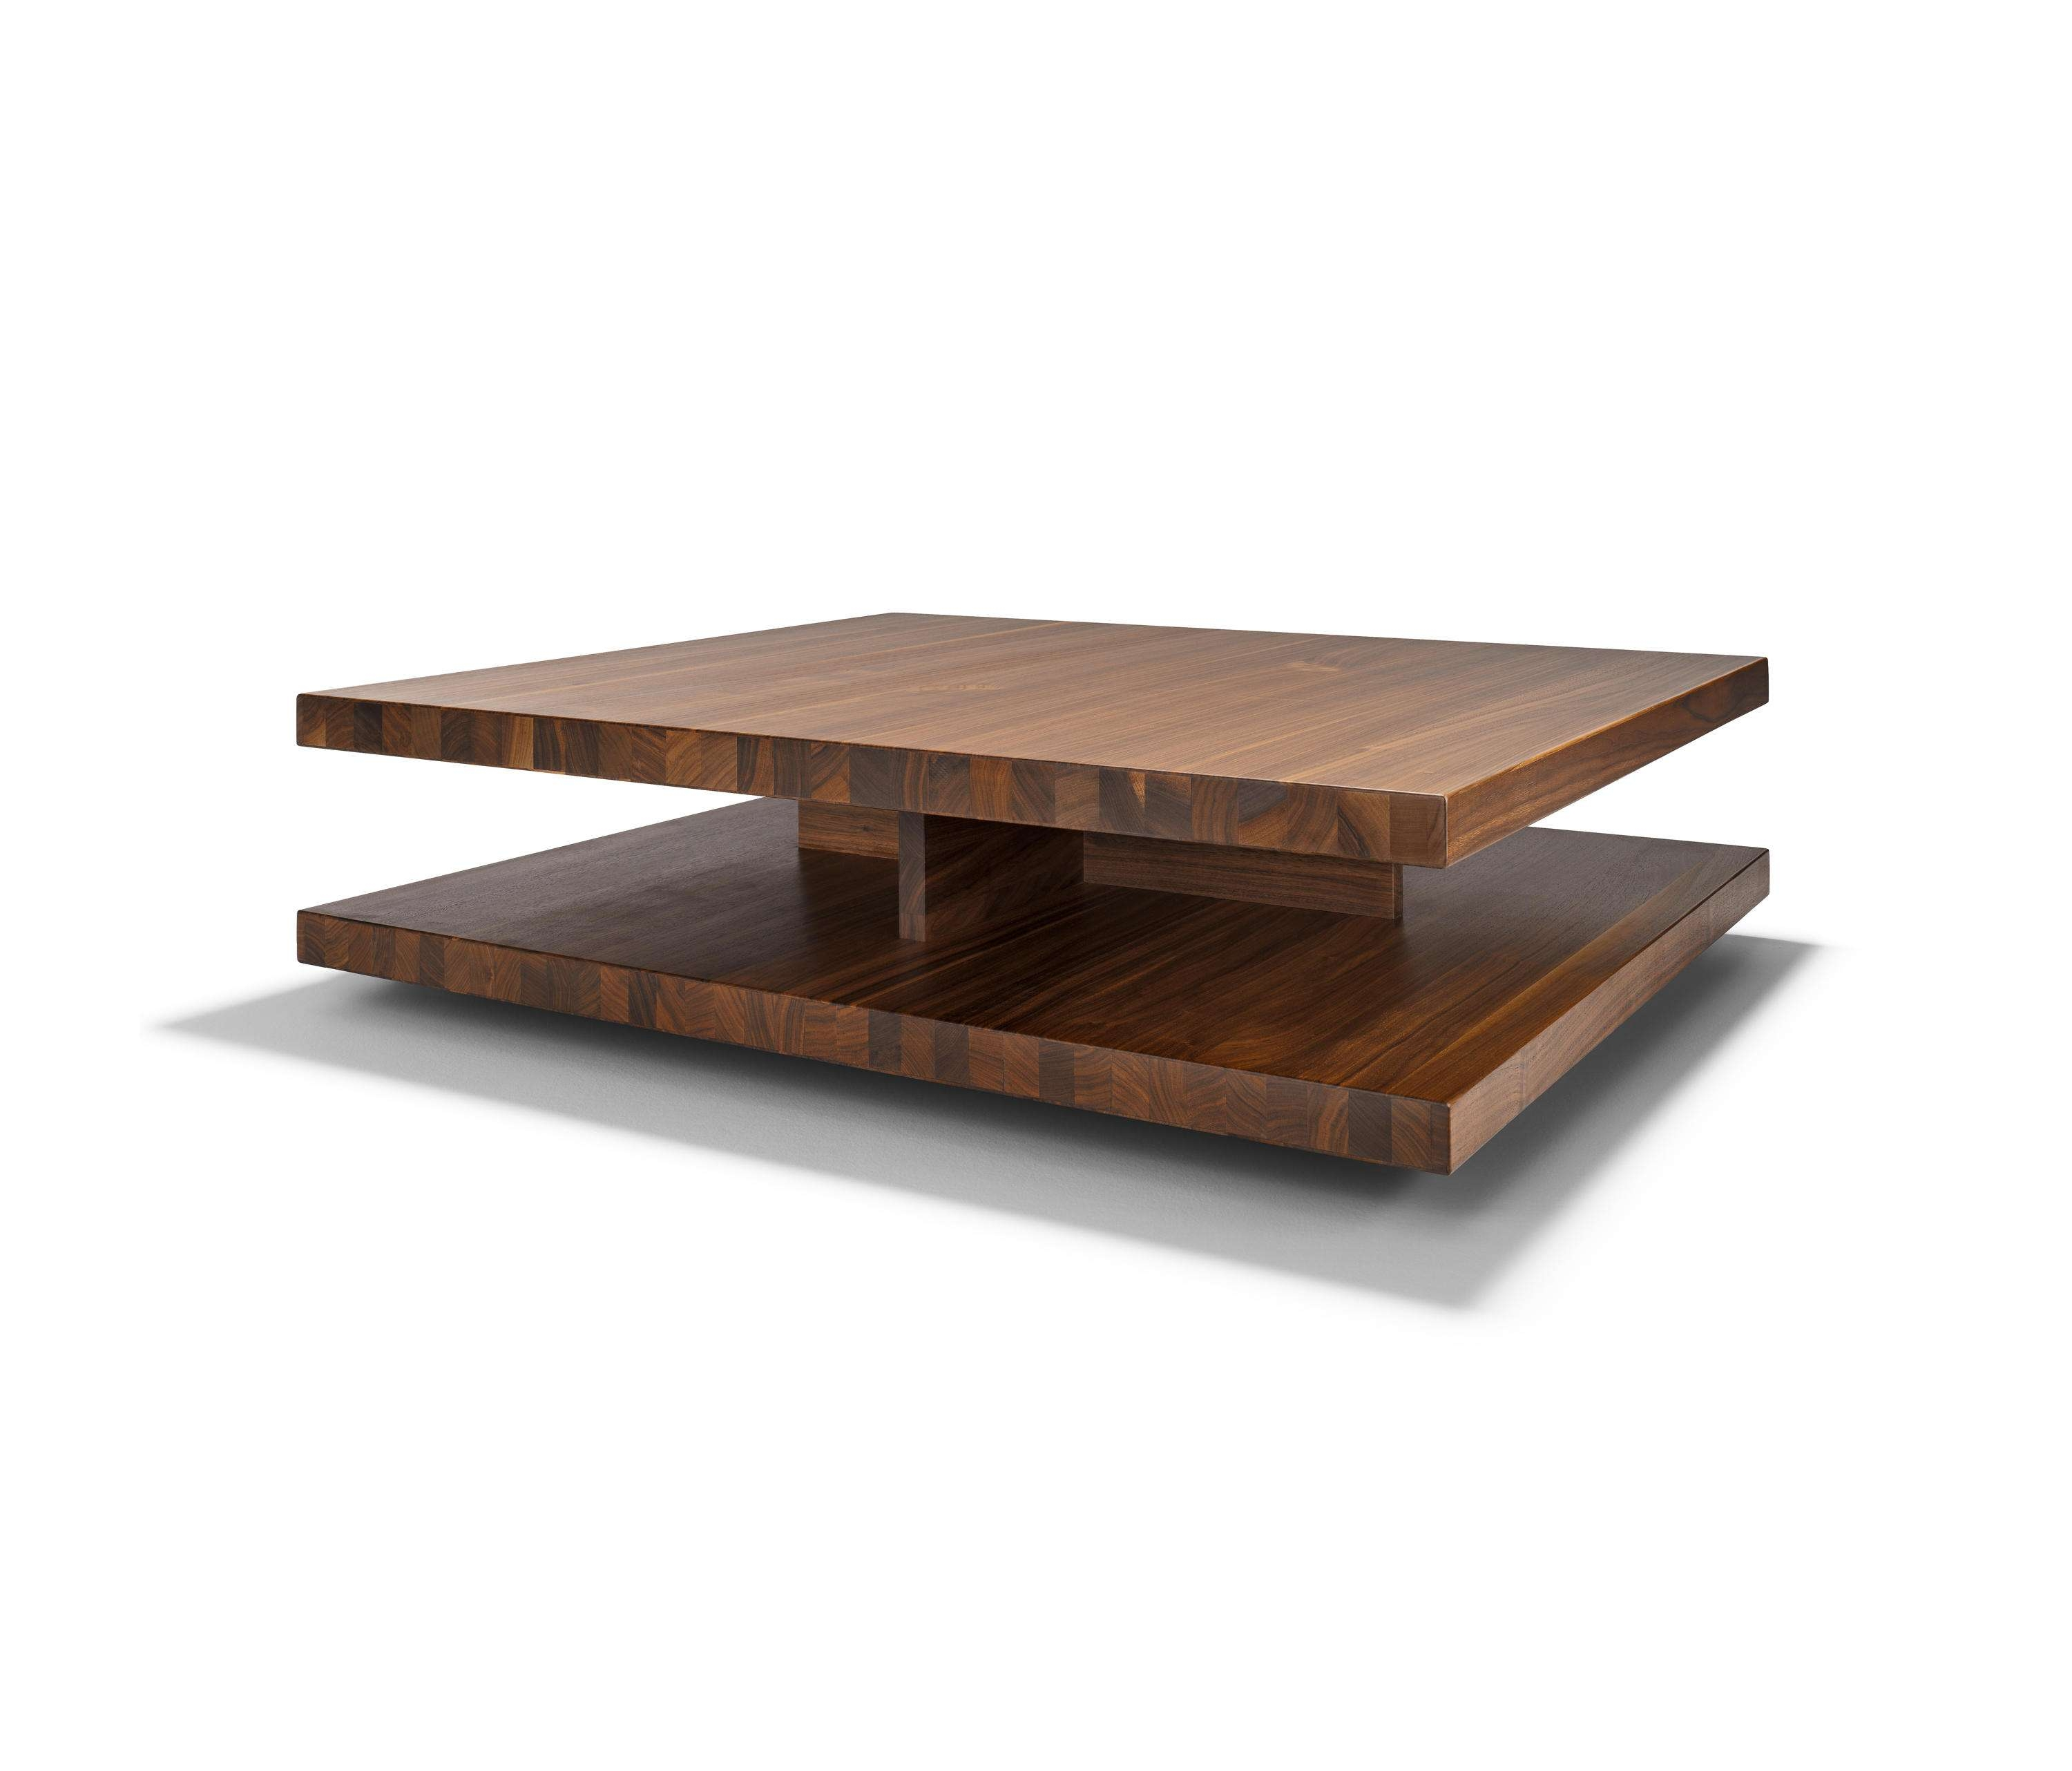 Architonic Pertaining To Best And Newest Large Low Wood Coffee Tables (View 2 of 20)